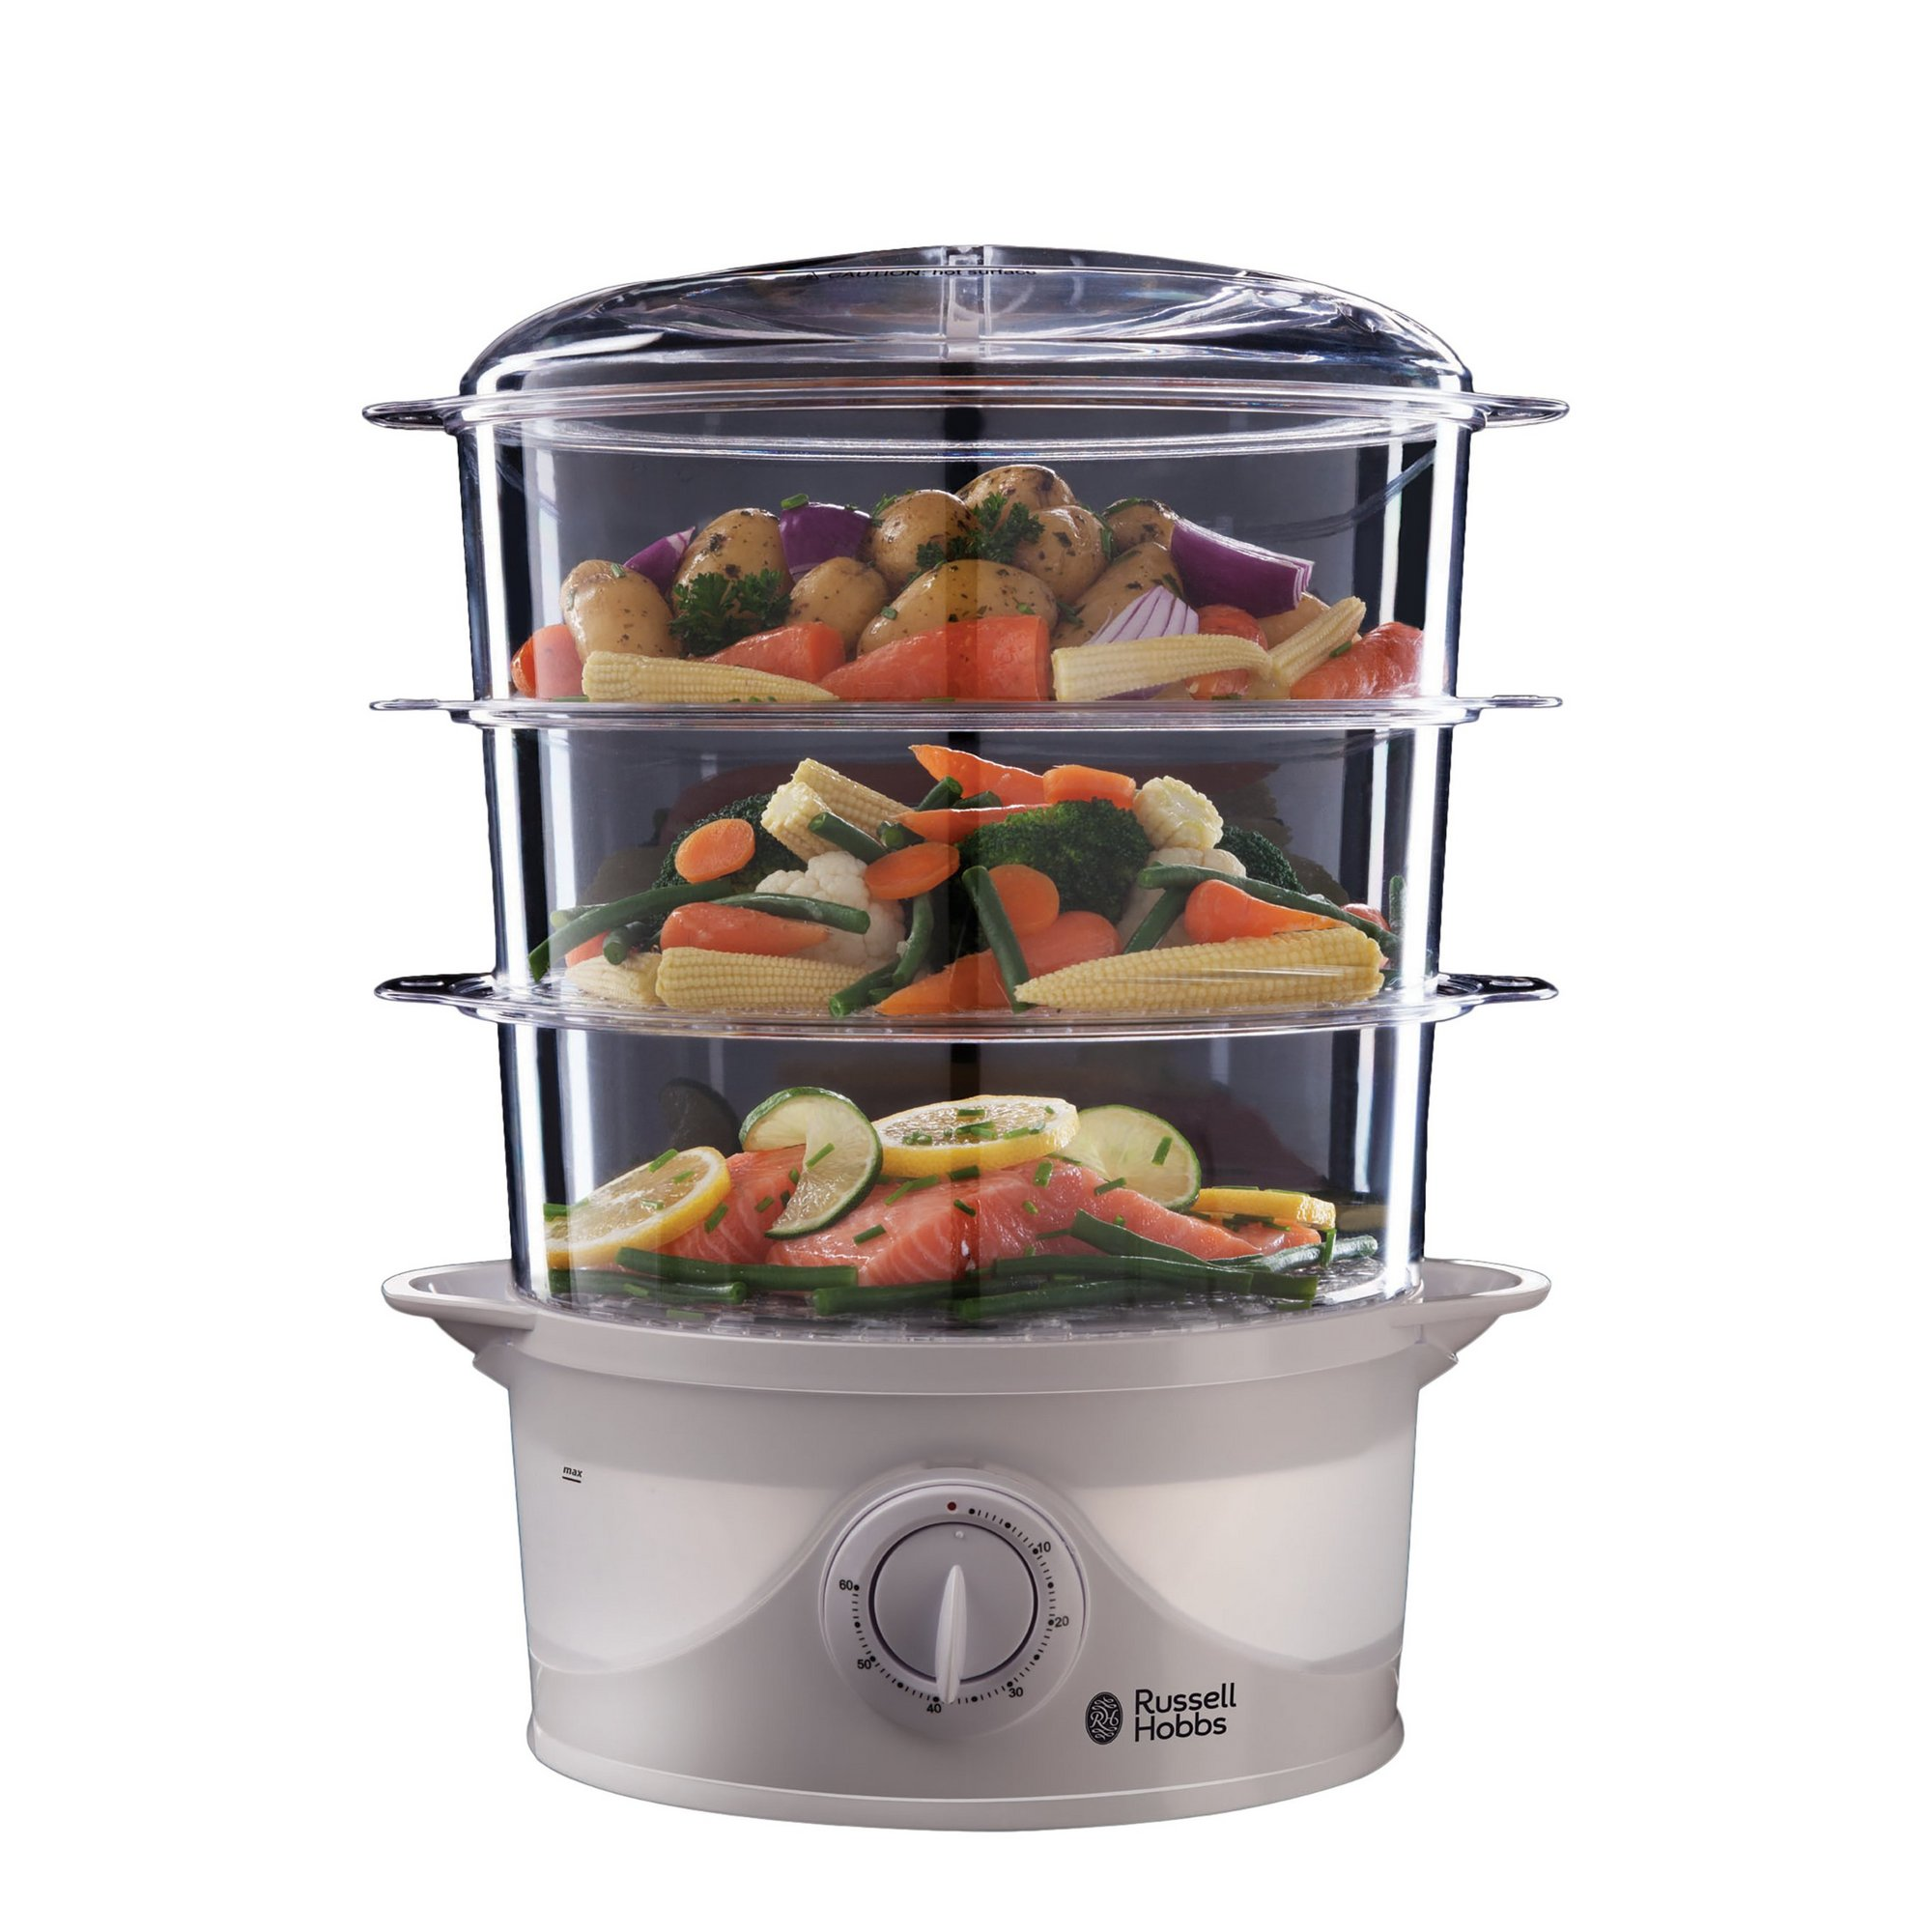 Image of Russell Hobbs 3 Tier Food Steamer